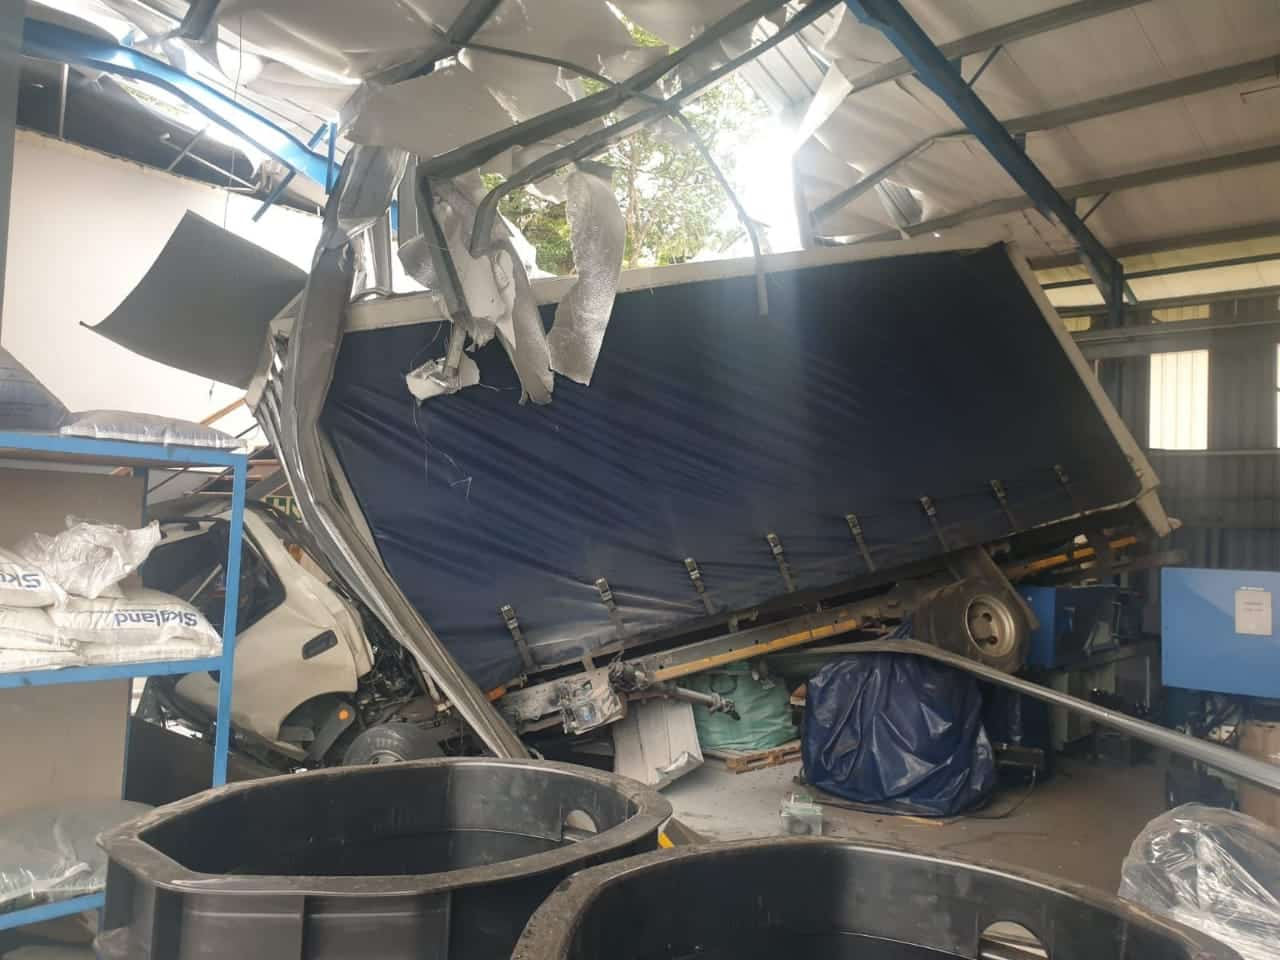 Watch: Truck driver loses control and crash lands on factory roof in Pinetown